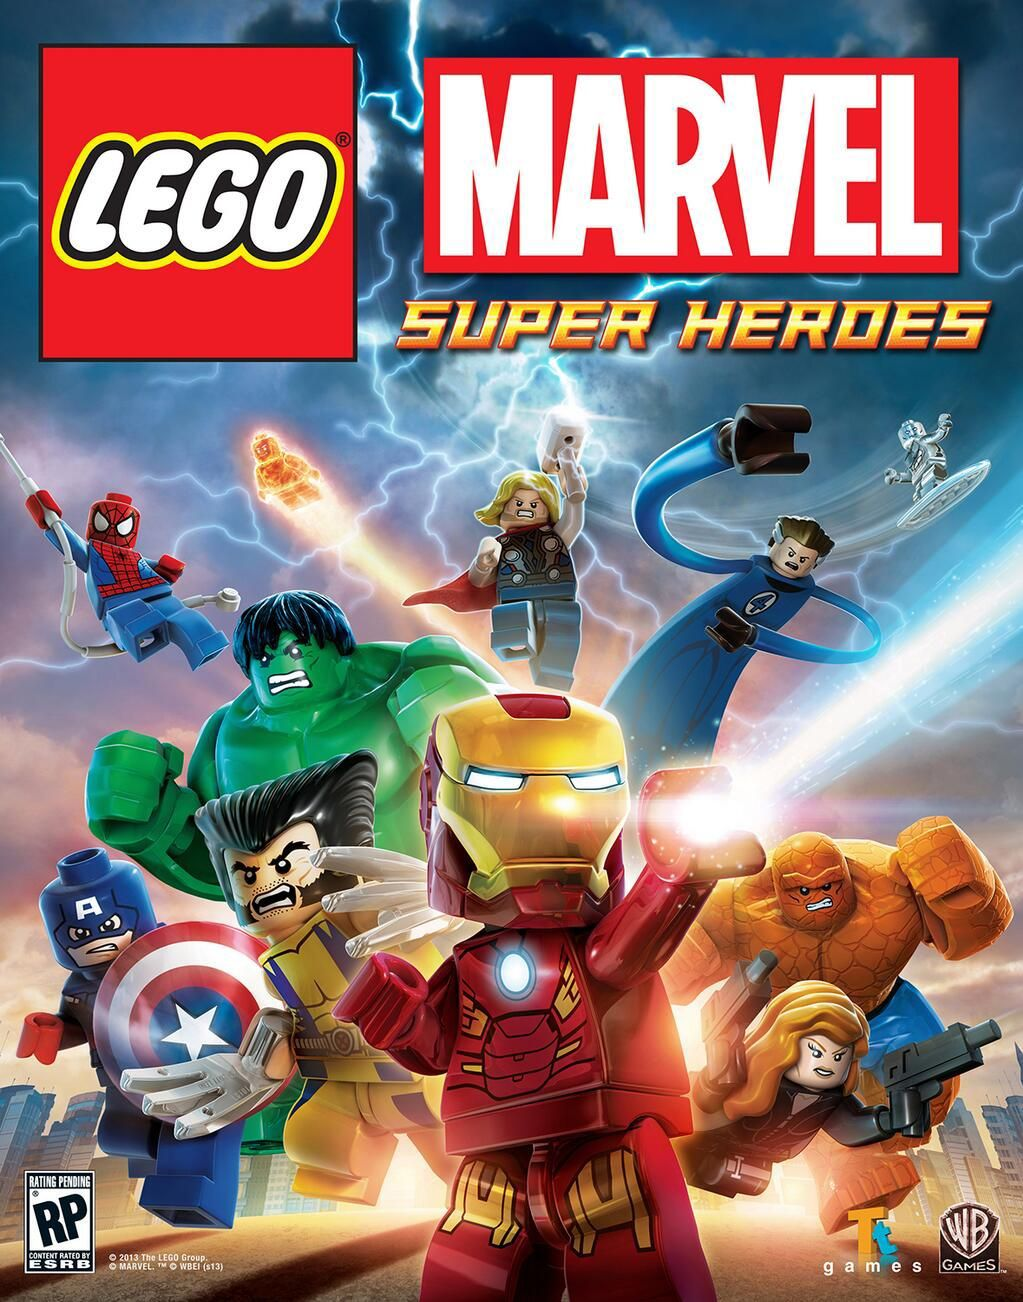 Lego Marvel Super Heroes (Video Game 2013) - IMDb